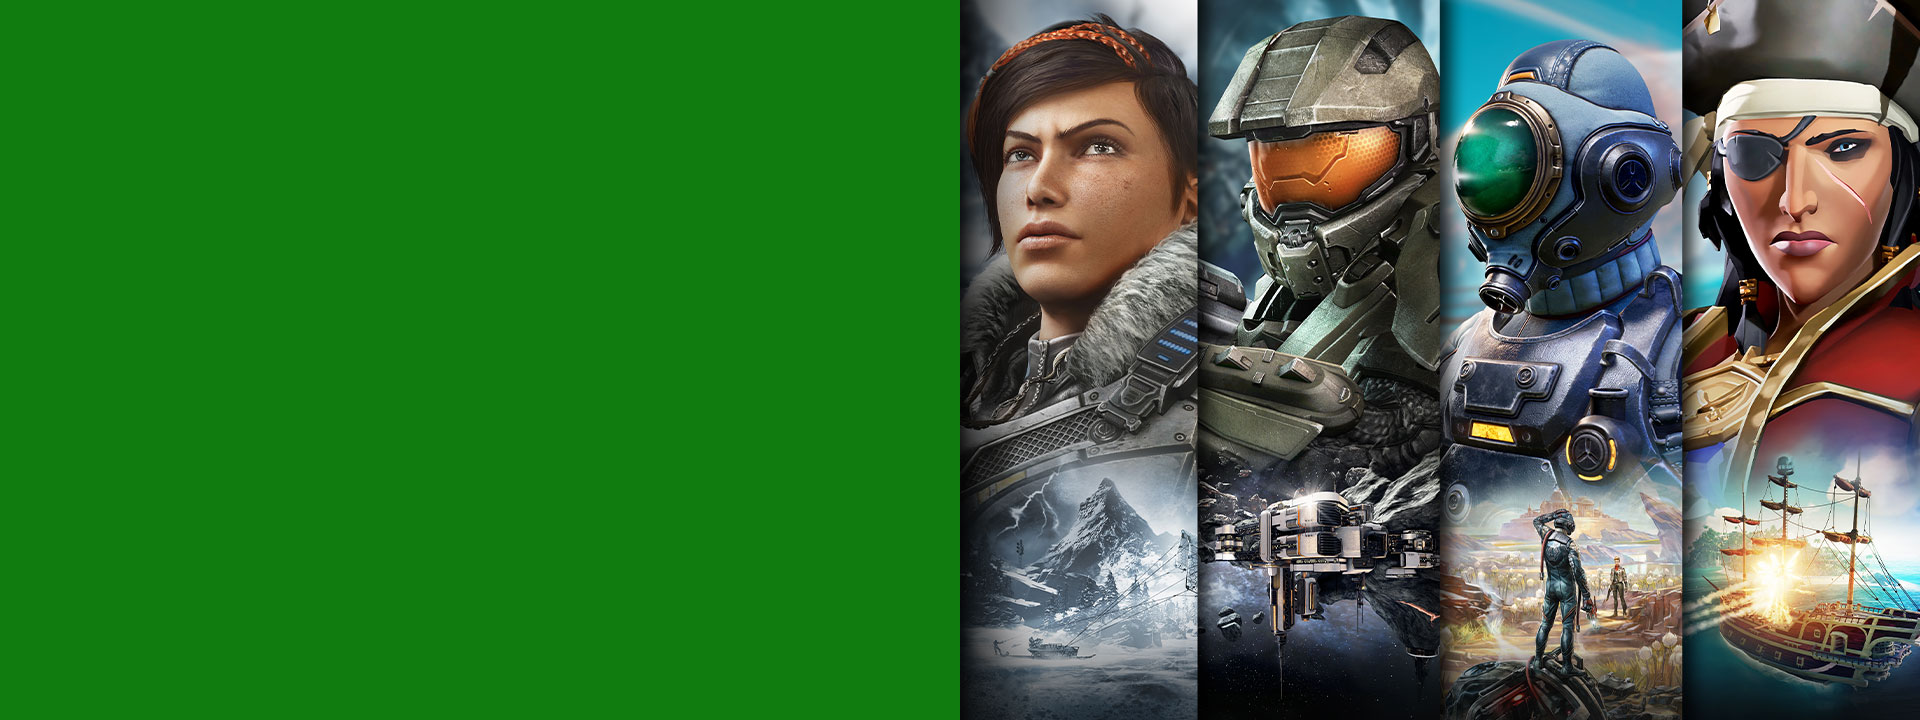 Personajes del juego Xbox Game Pass de Gears 5, Halo, The Outer Worlds y Sea of Thieves.